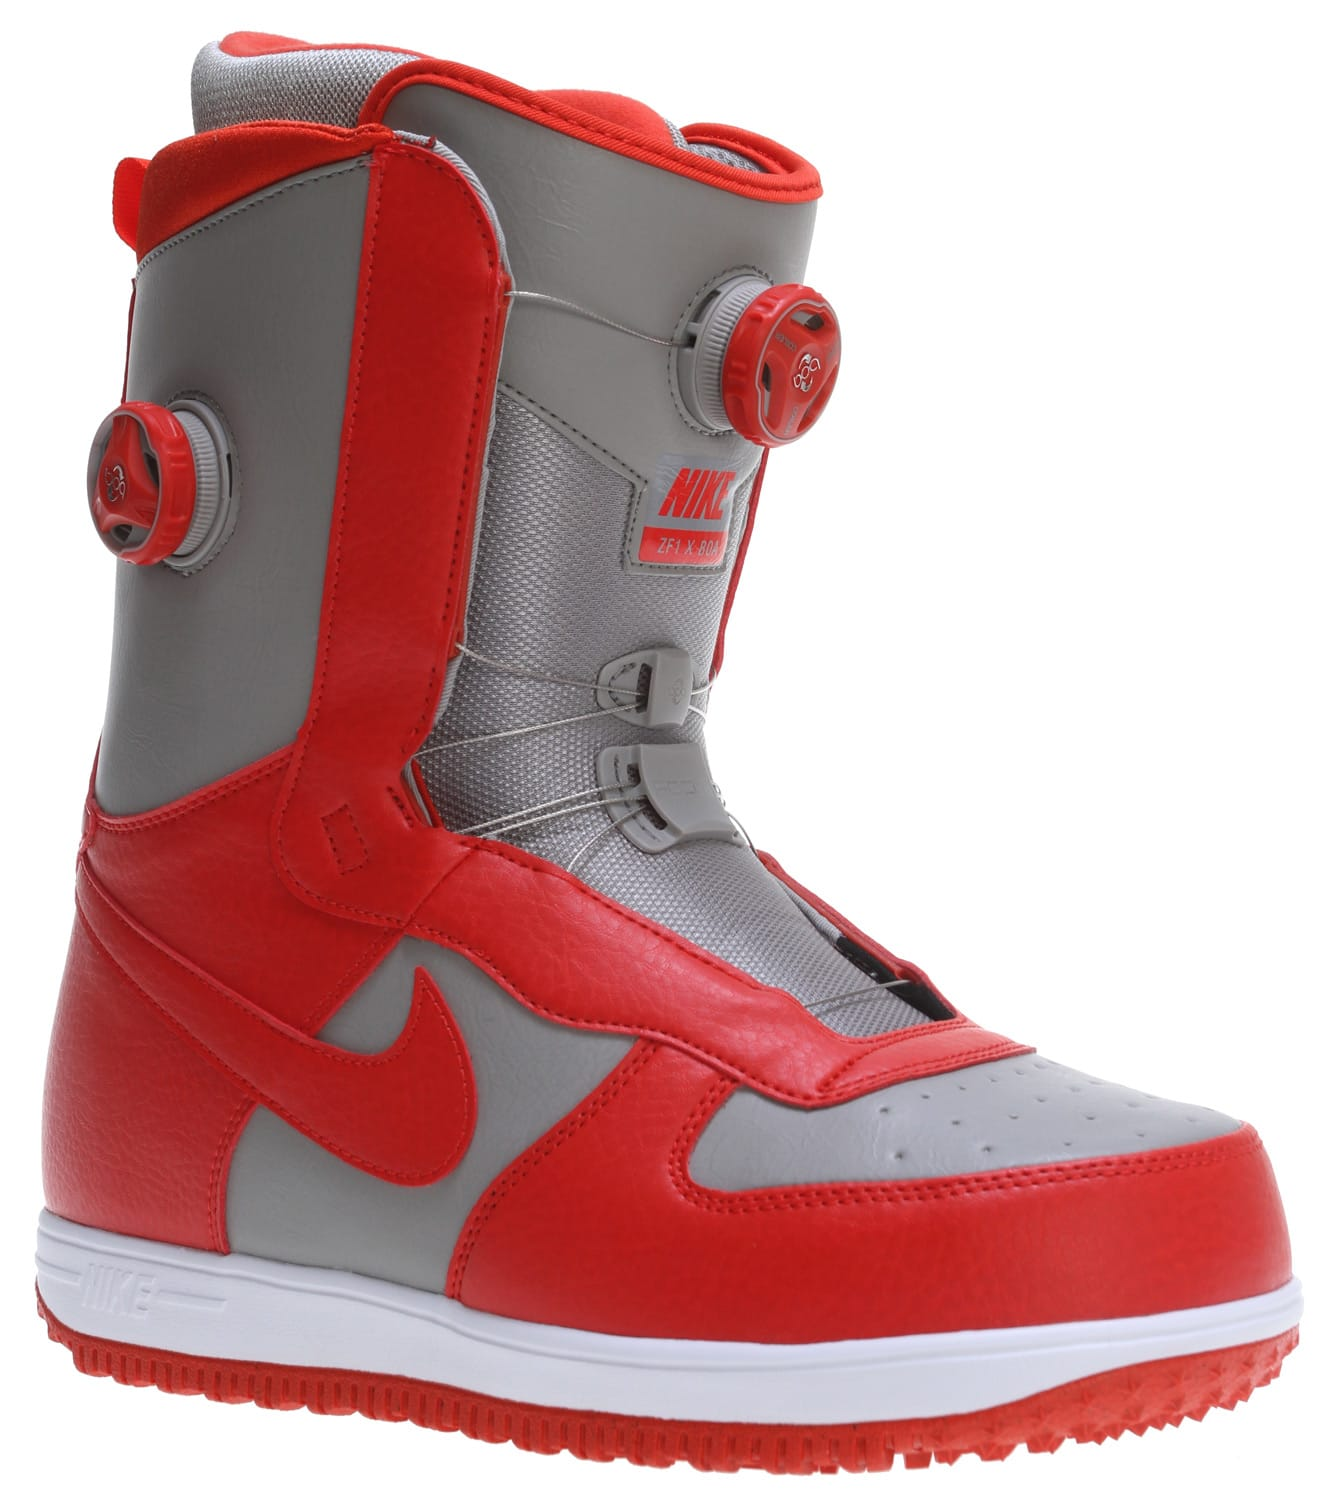 nike zoom force 1 x boa snowboard boots. Black Bedroom Furniture Sets. Home Design Ideas